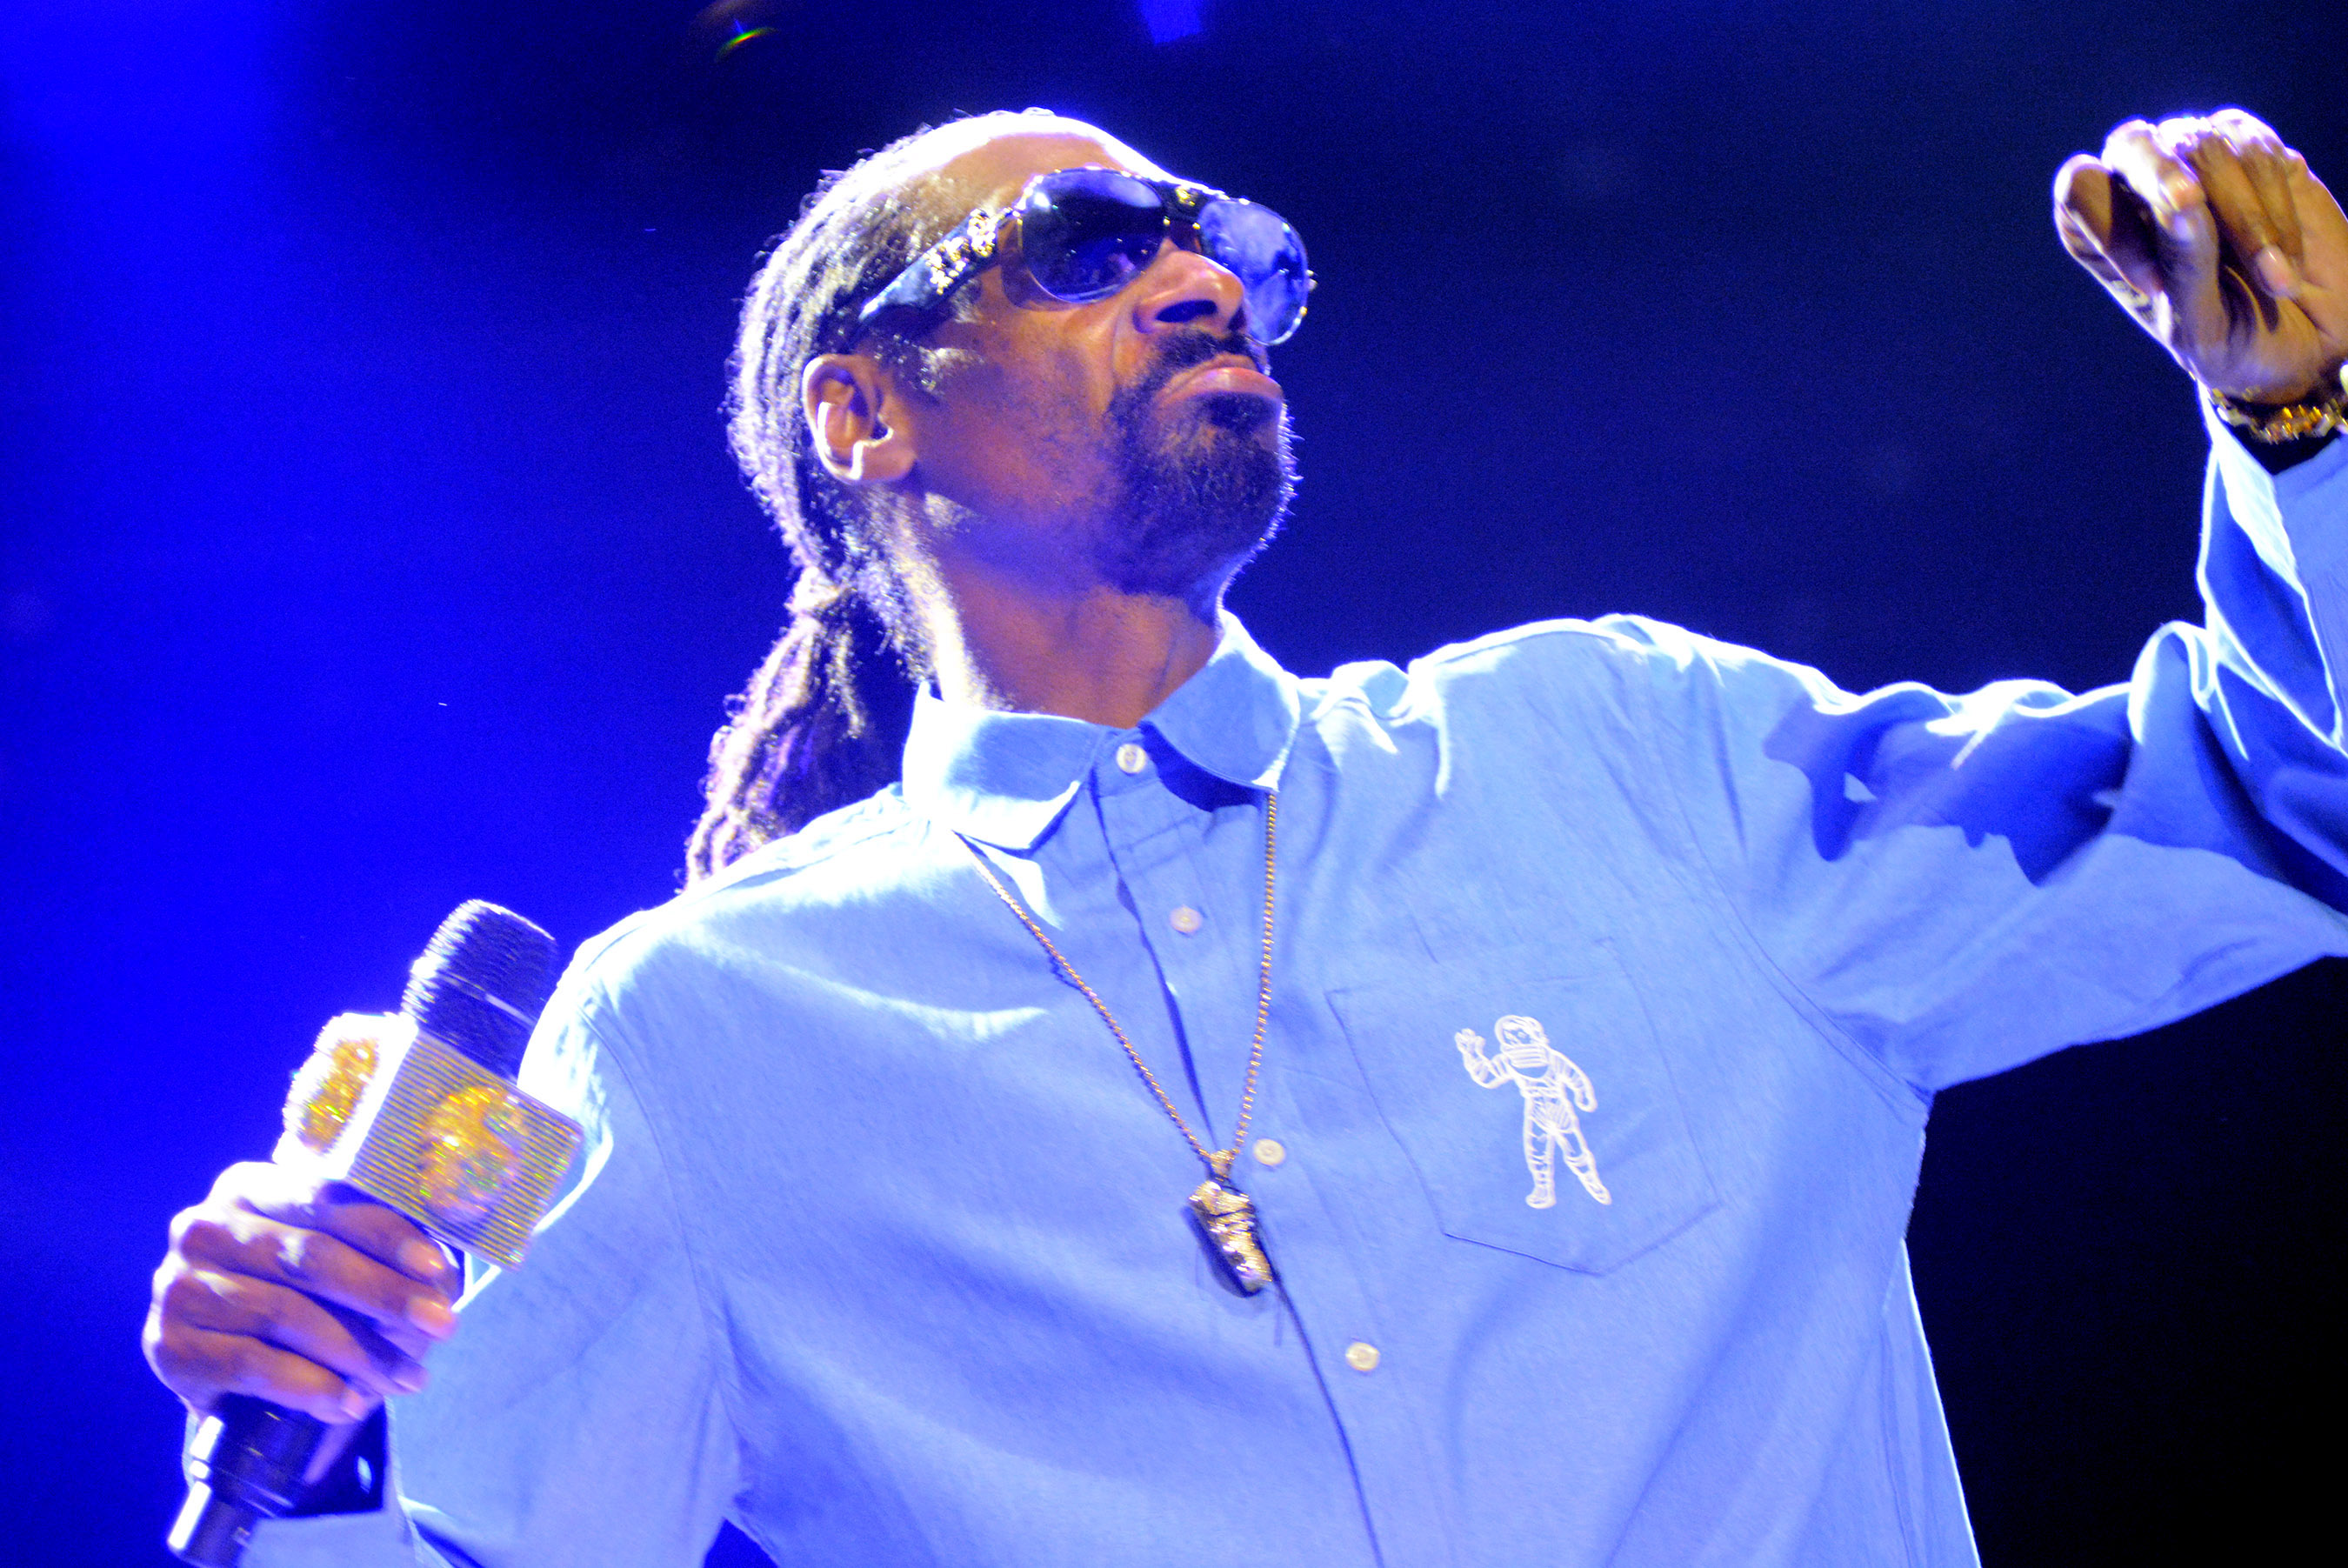 SNOOP DOGG AT MUSIKFEST